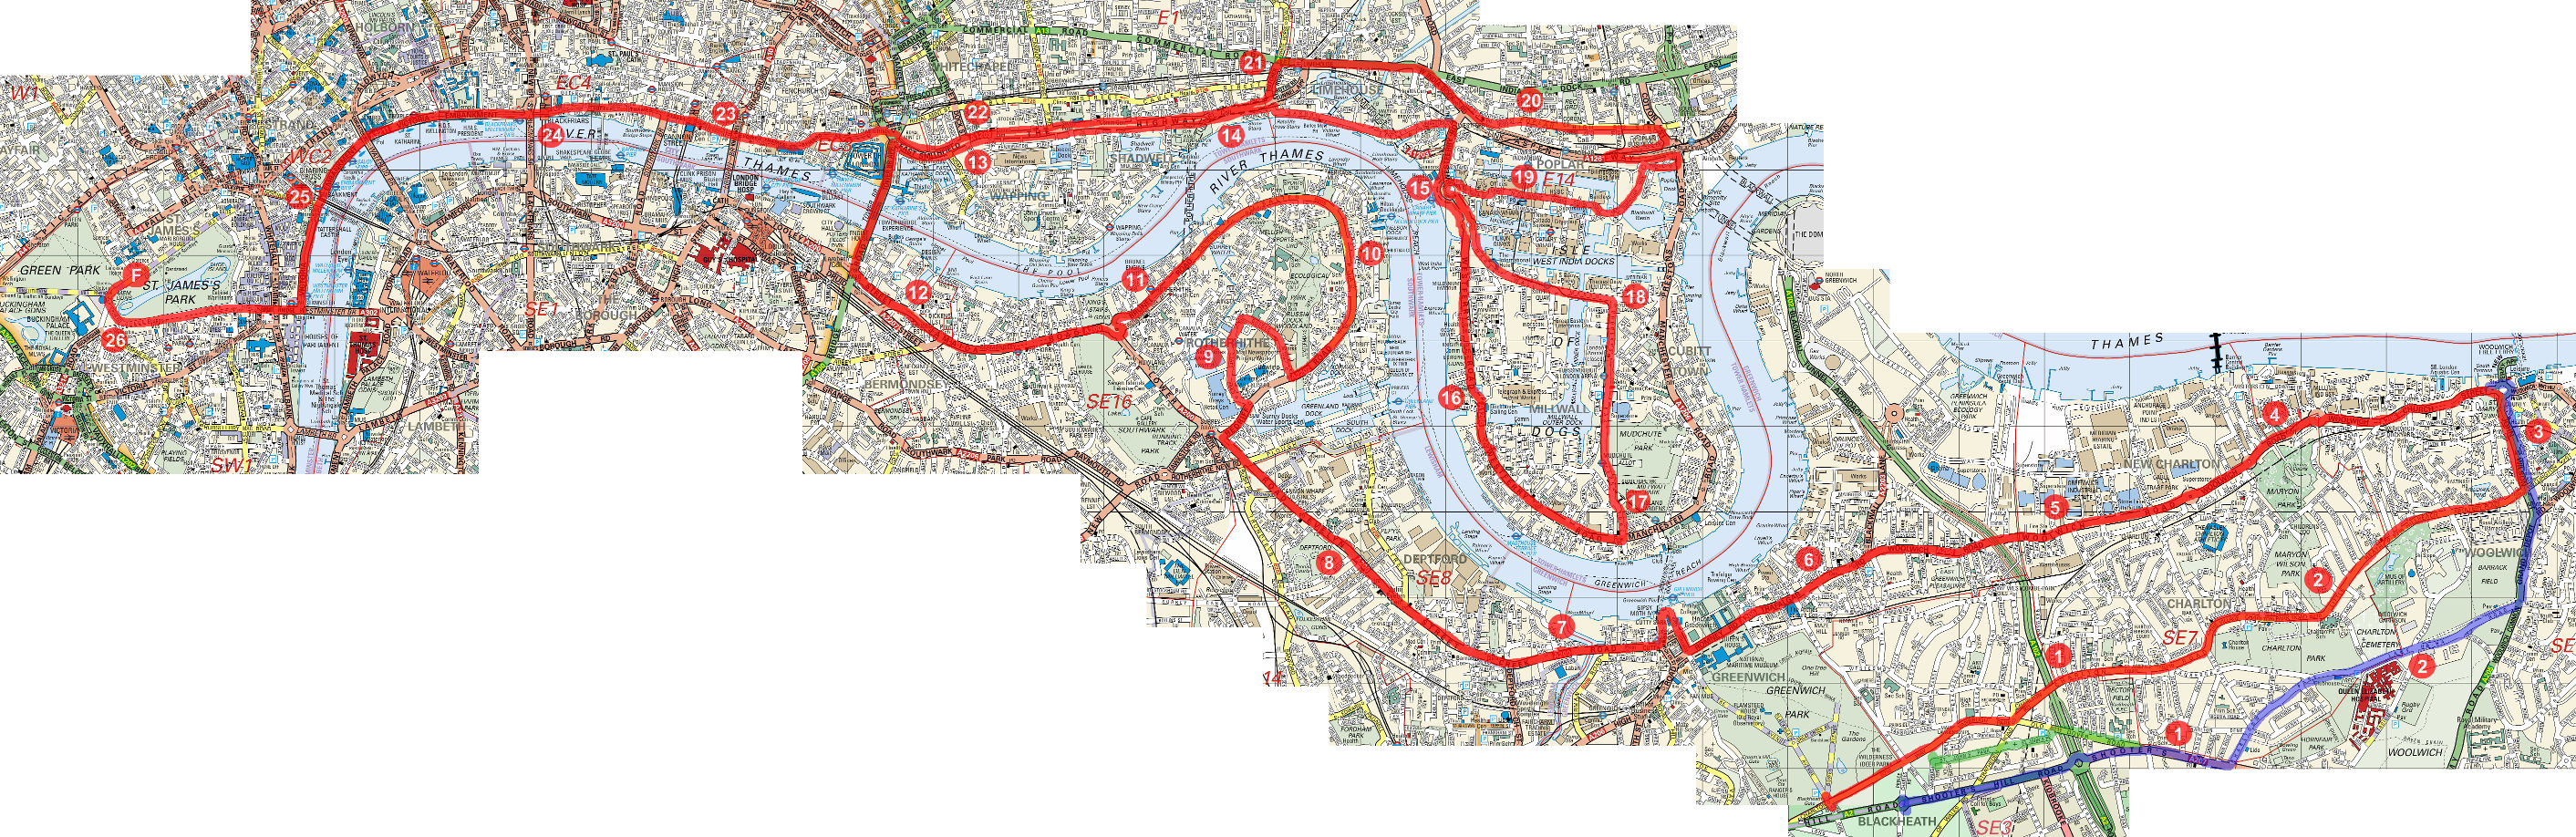 London Marathon course map